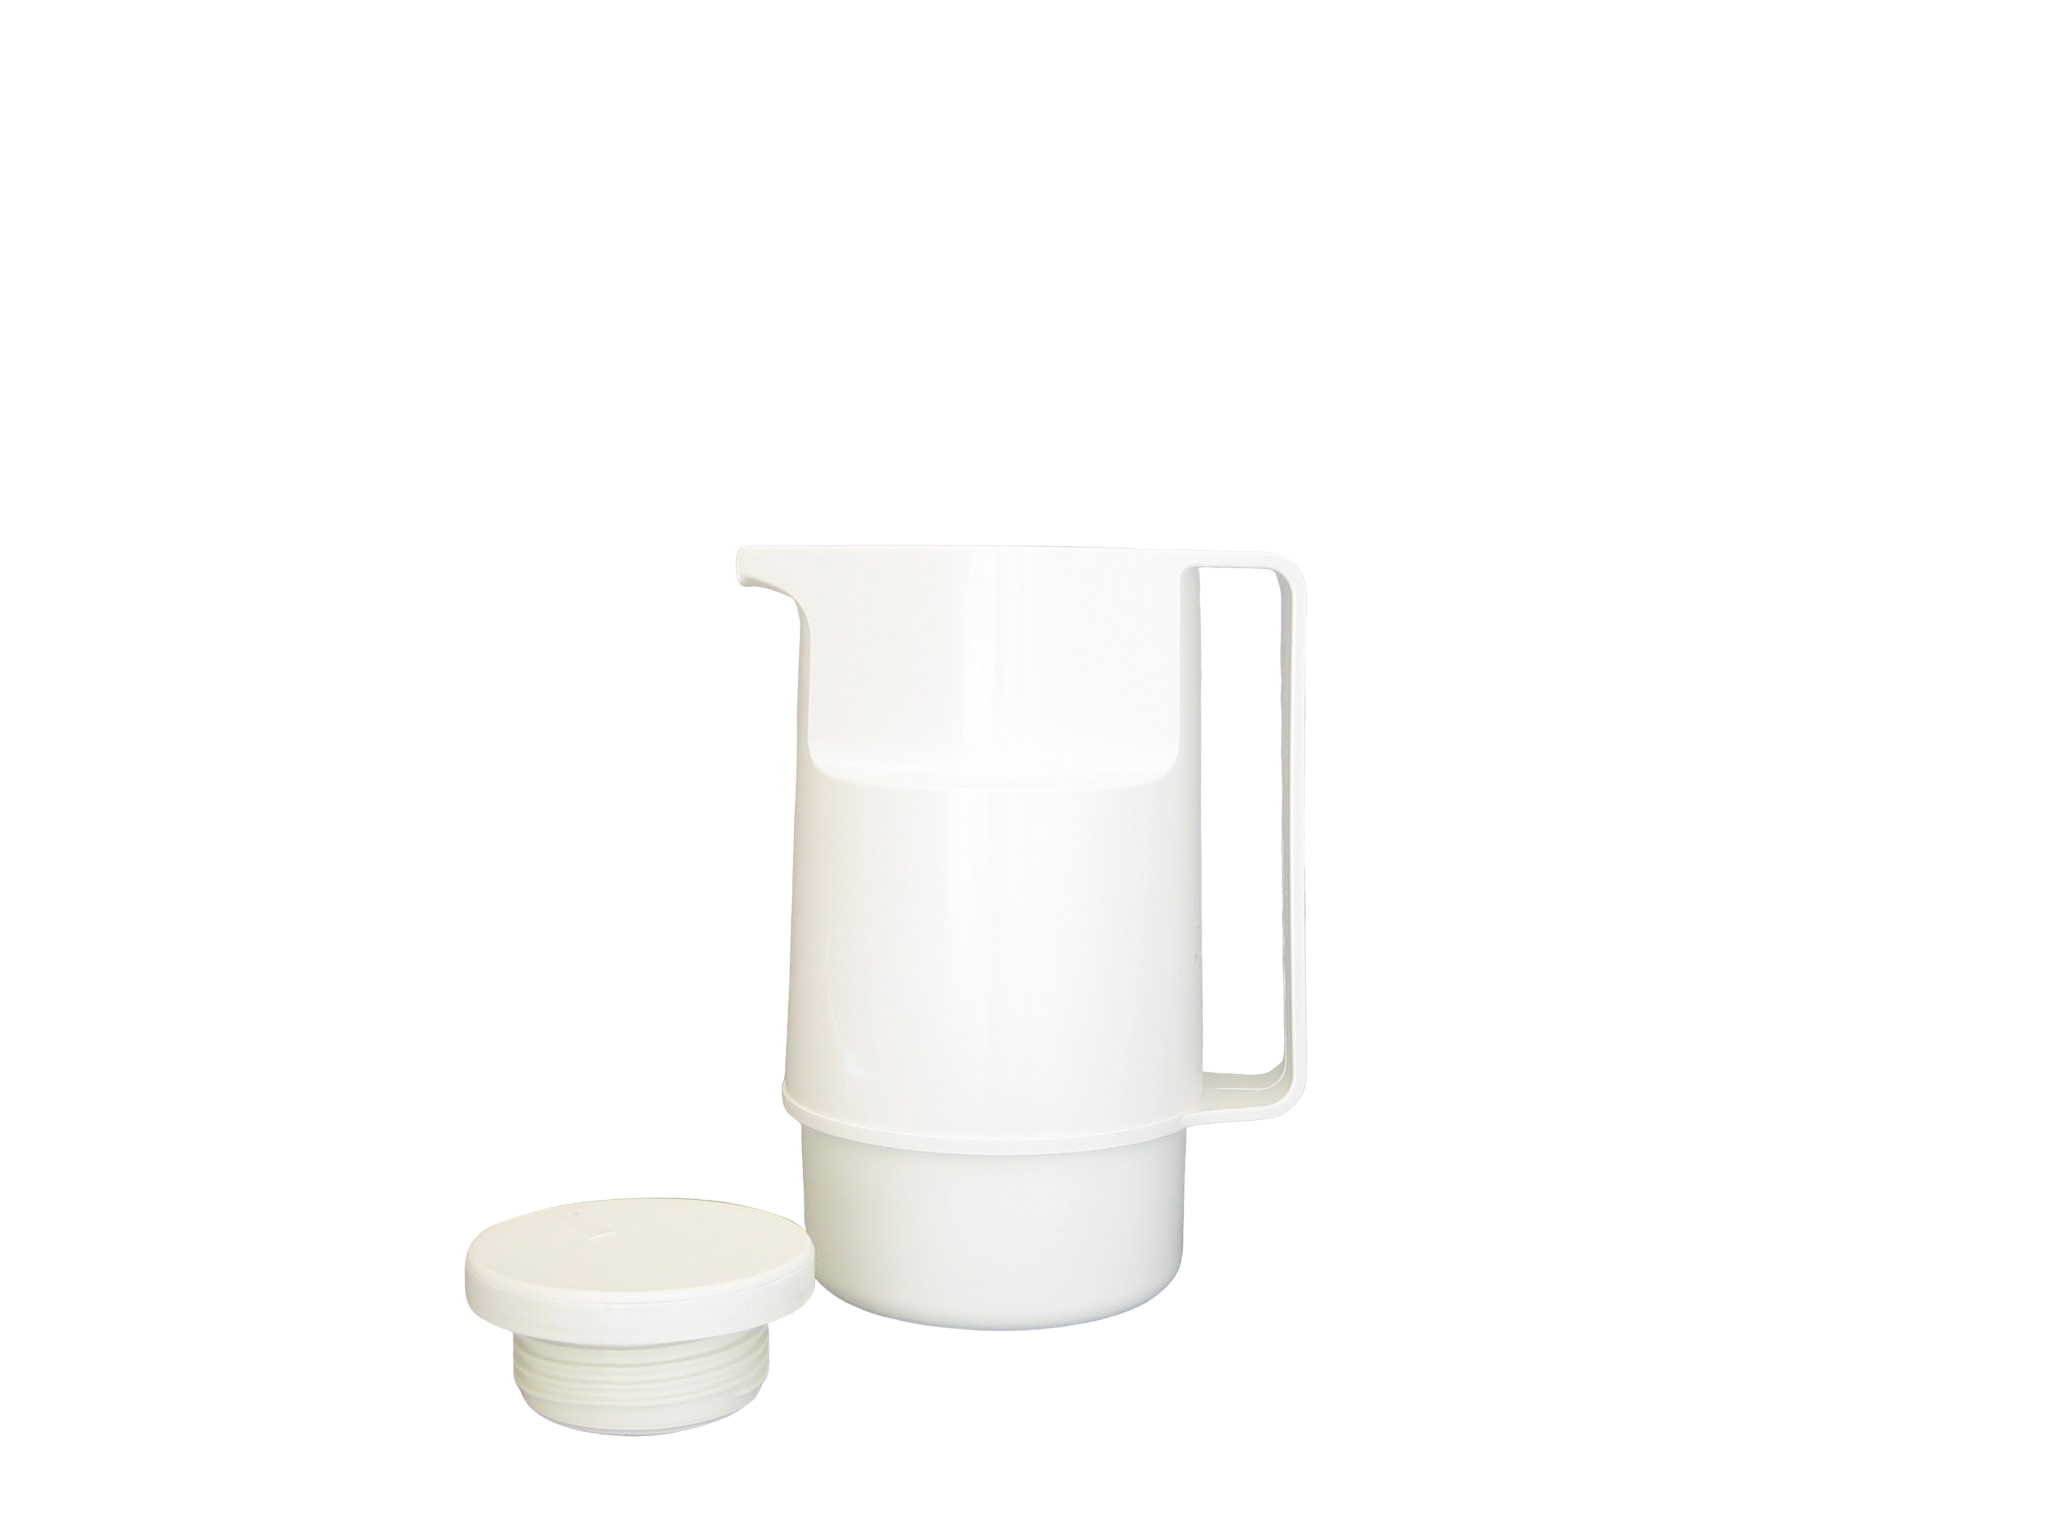 206-001 - Pichet isotherme ABS  blanc 0.60 L - Isobel